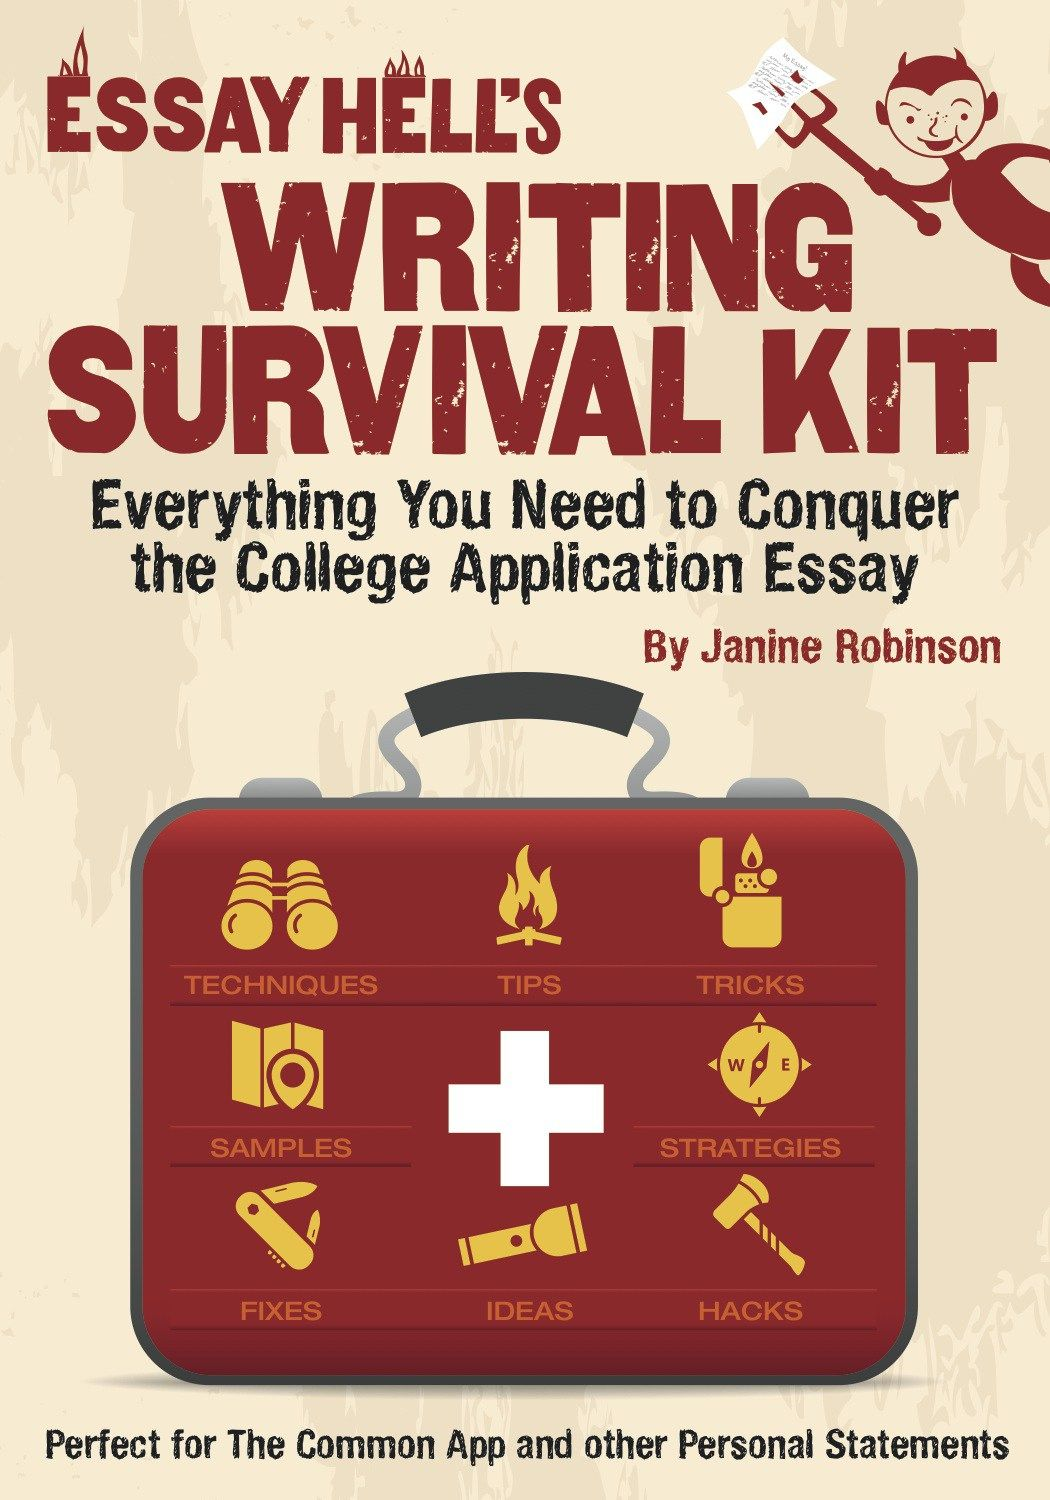 Essay on why i want to go to college